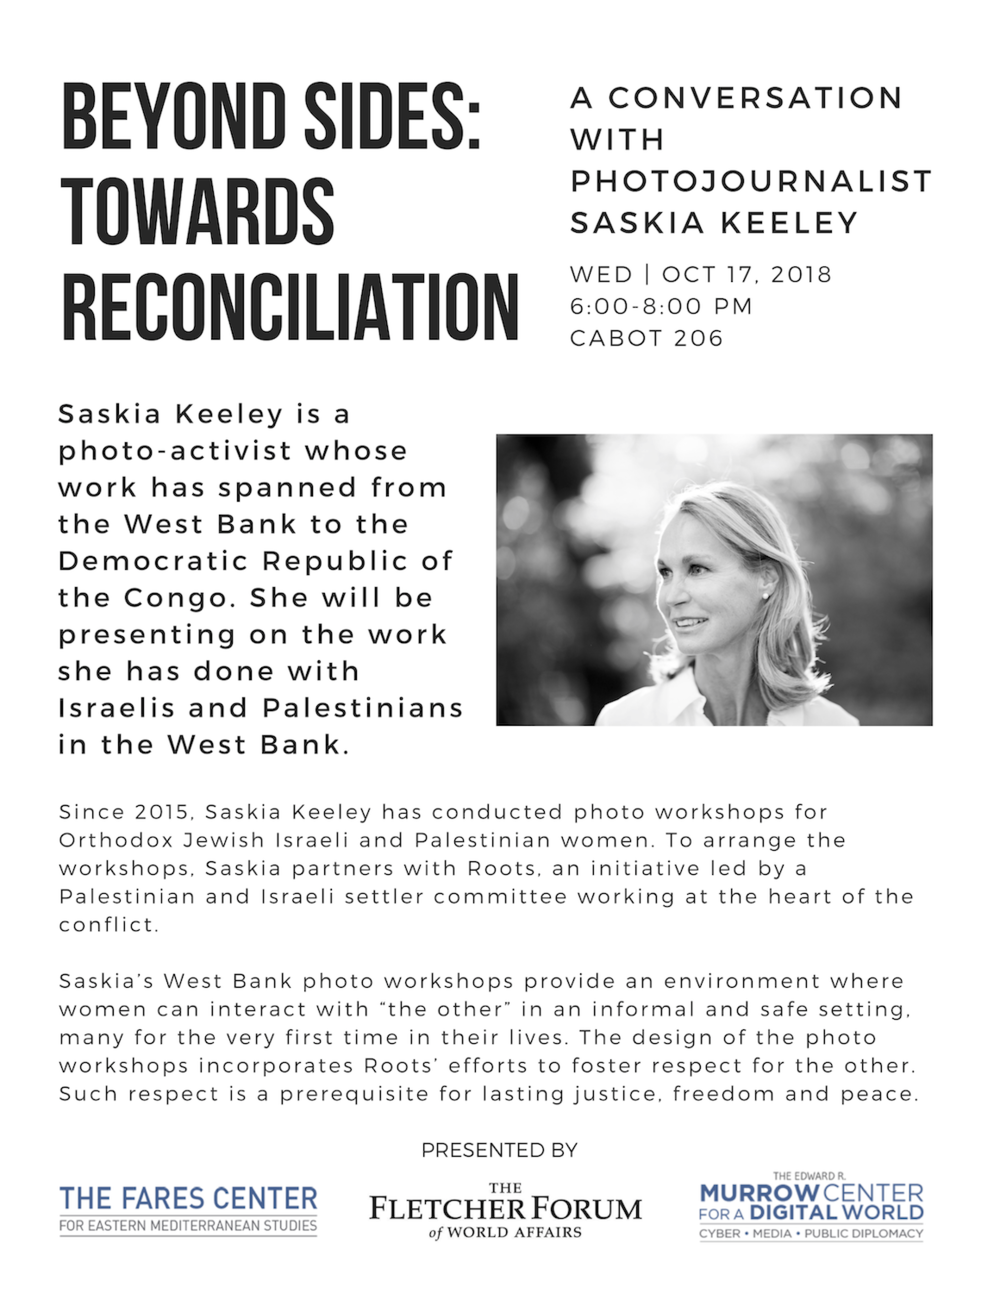 saskia-keeley-photography-humanitarian-photojournalism-documentarian-events-beyond-sides-towards-reconciliation-tufts-university-non-violence-workshops-israel-palestine.png